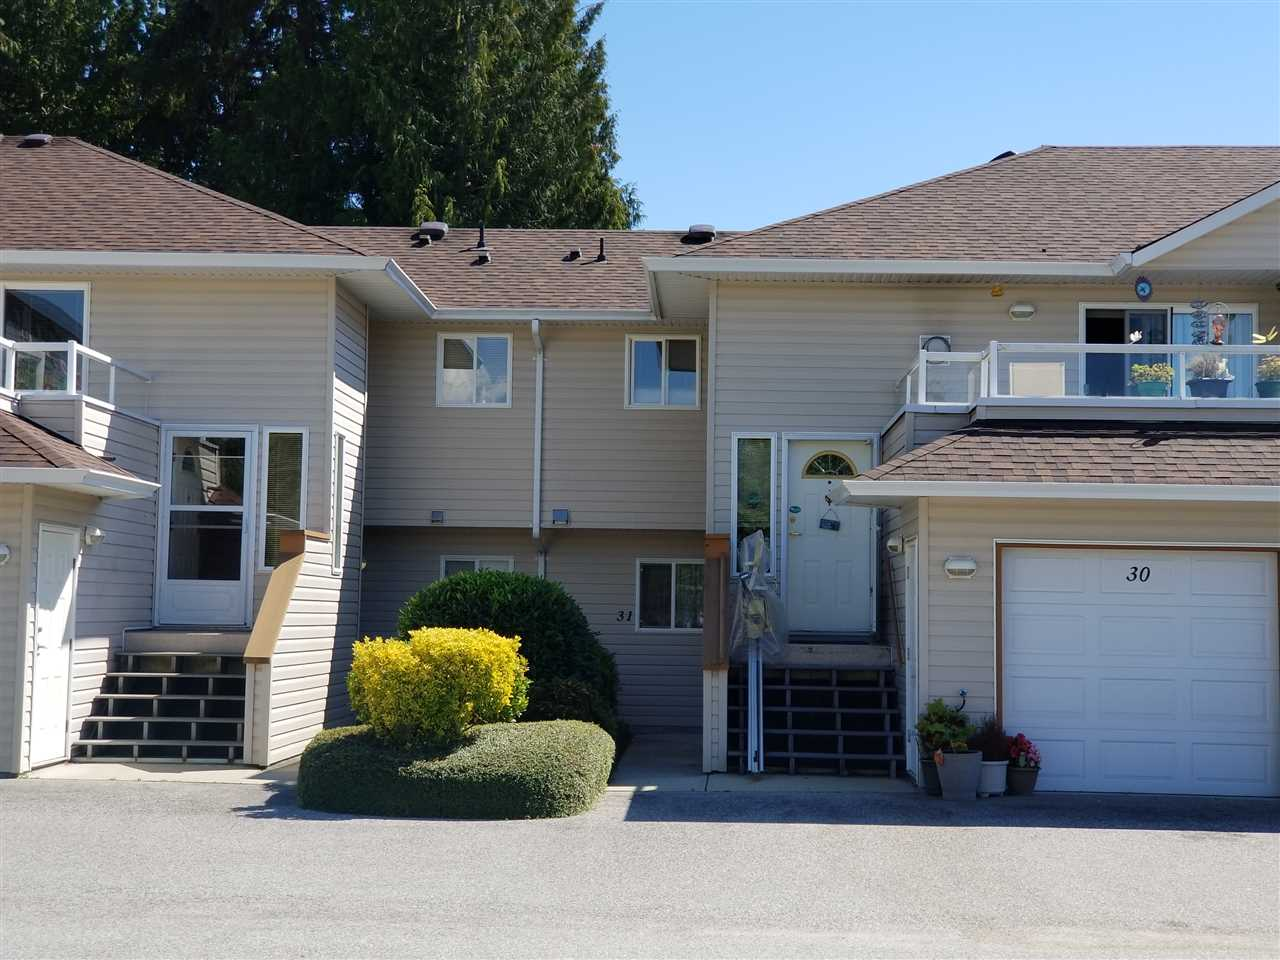 Main Photo: 31 5610 TRAIL Avenue in Sechelt: Sechelt District Townhouse for sale (Sunshine Coast)  : MLS®# R2290718